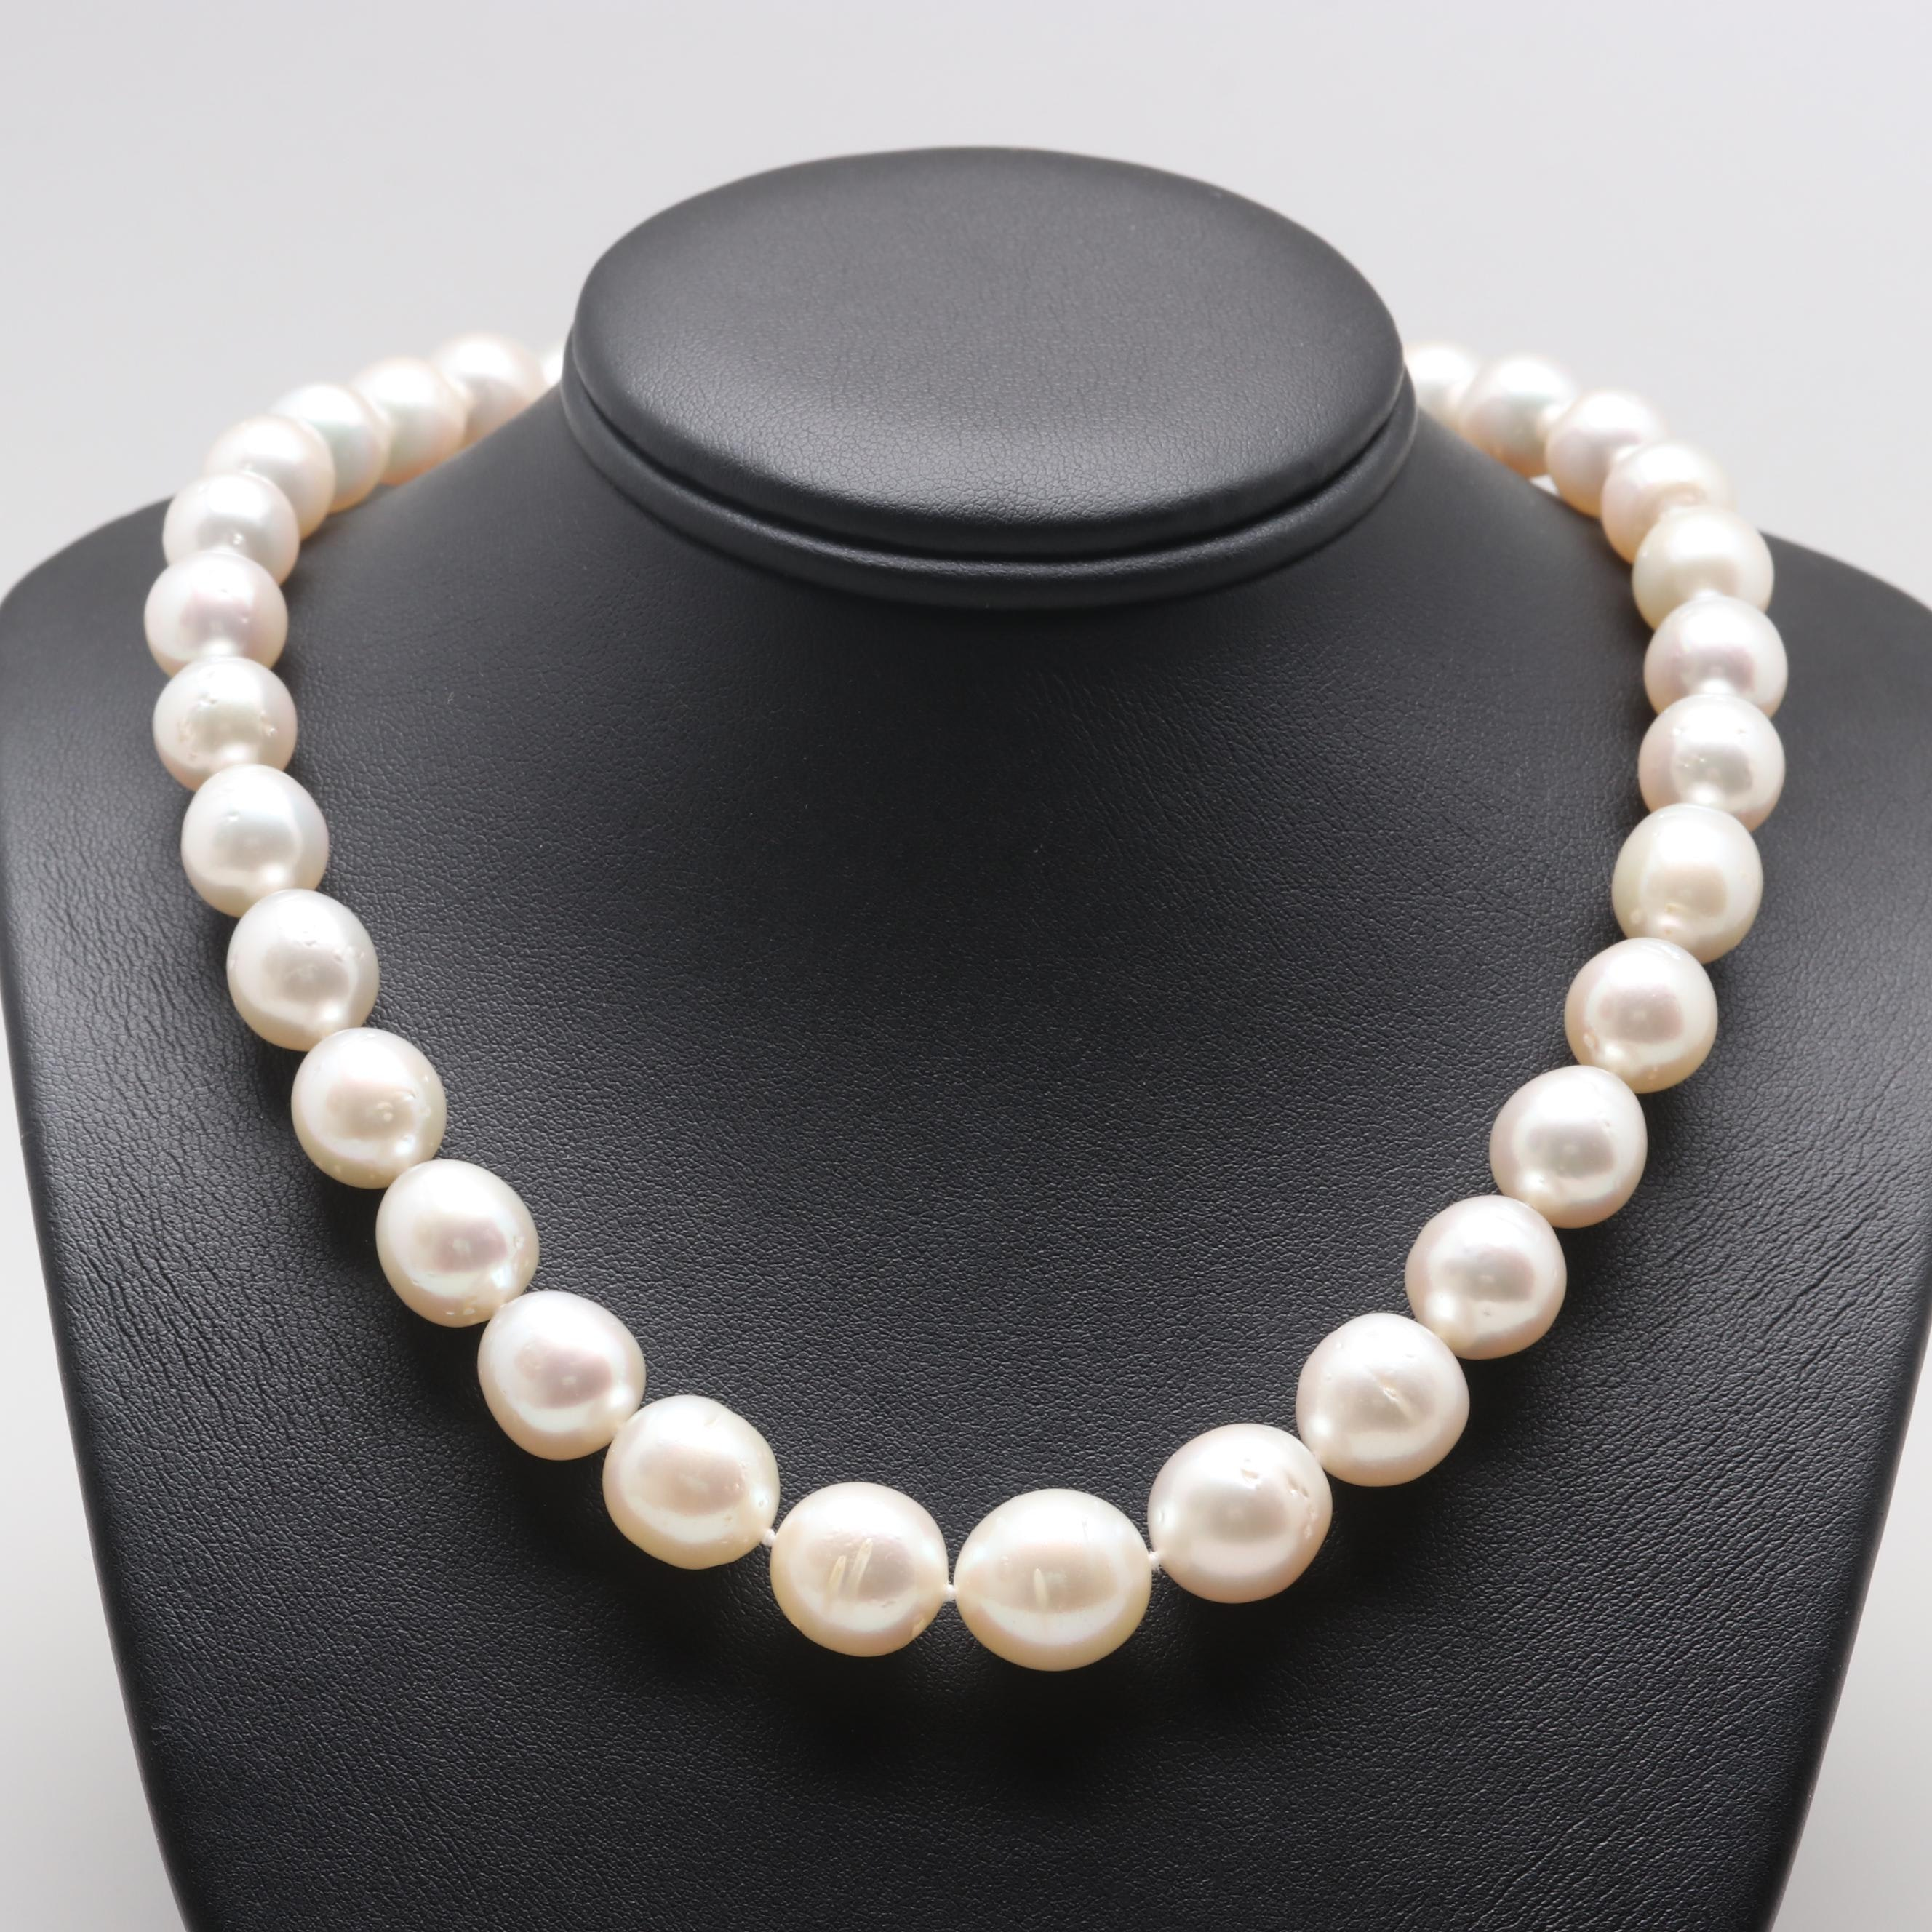 14K White Gold Cultured Pearl Single Strand Necklace